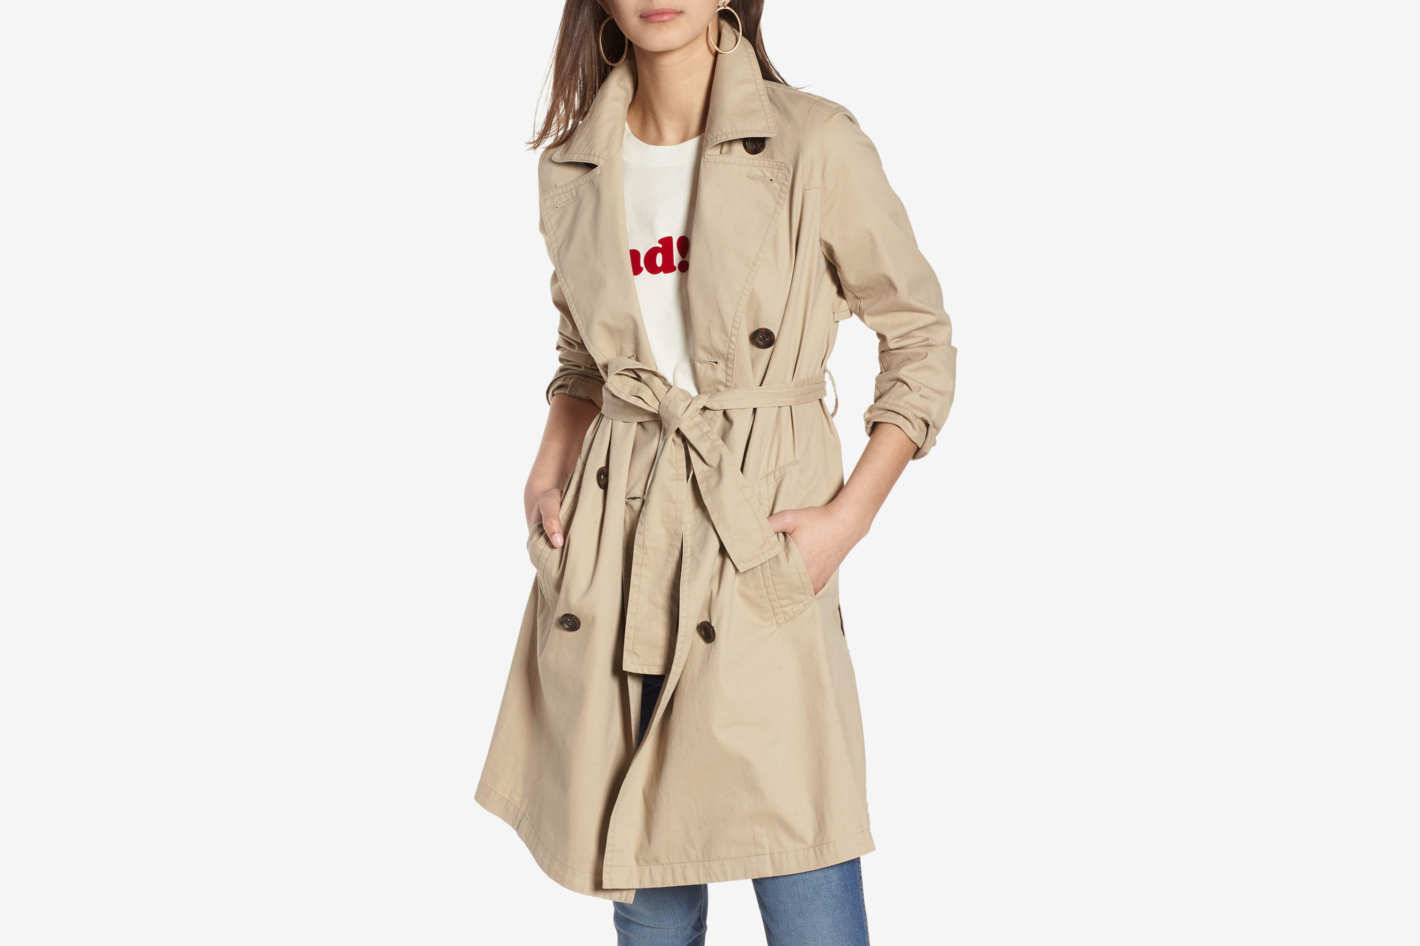 Madewell Abroad Trench Coat